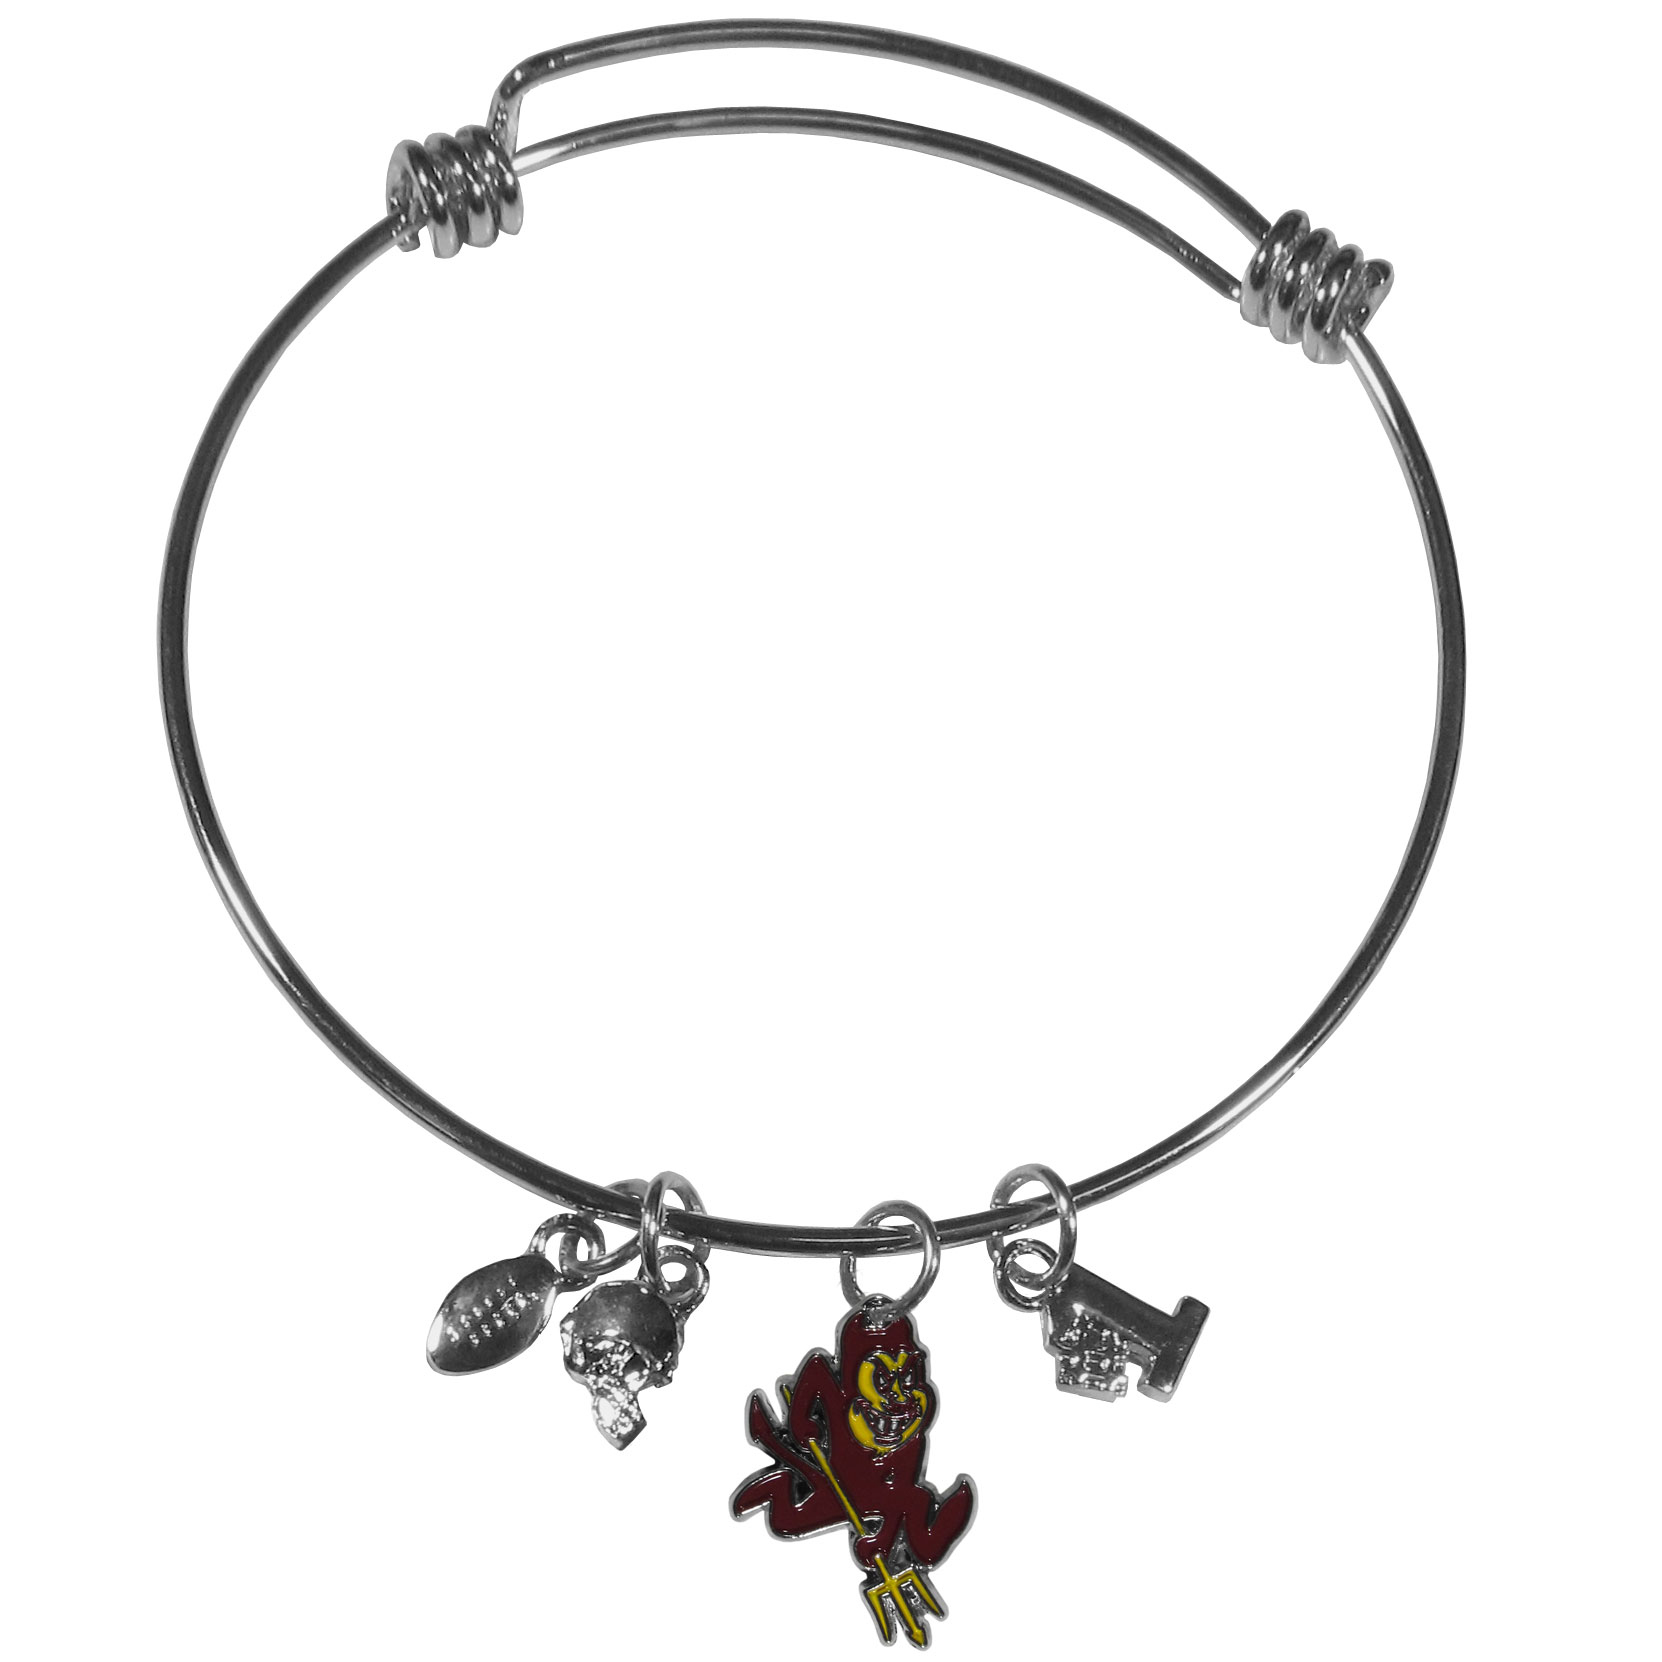 Arizona St. Sun Devils Charm Bangle Bracelet - Adjustable wire bracelets are all the rage and this Arizona St. Sun Devils bracelet matches the popular trend with your beloved team. The bracelet features 4 charms in total, each feature exceptional detail and the team charm has enameled team colors.